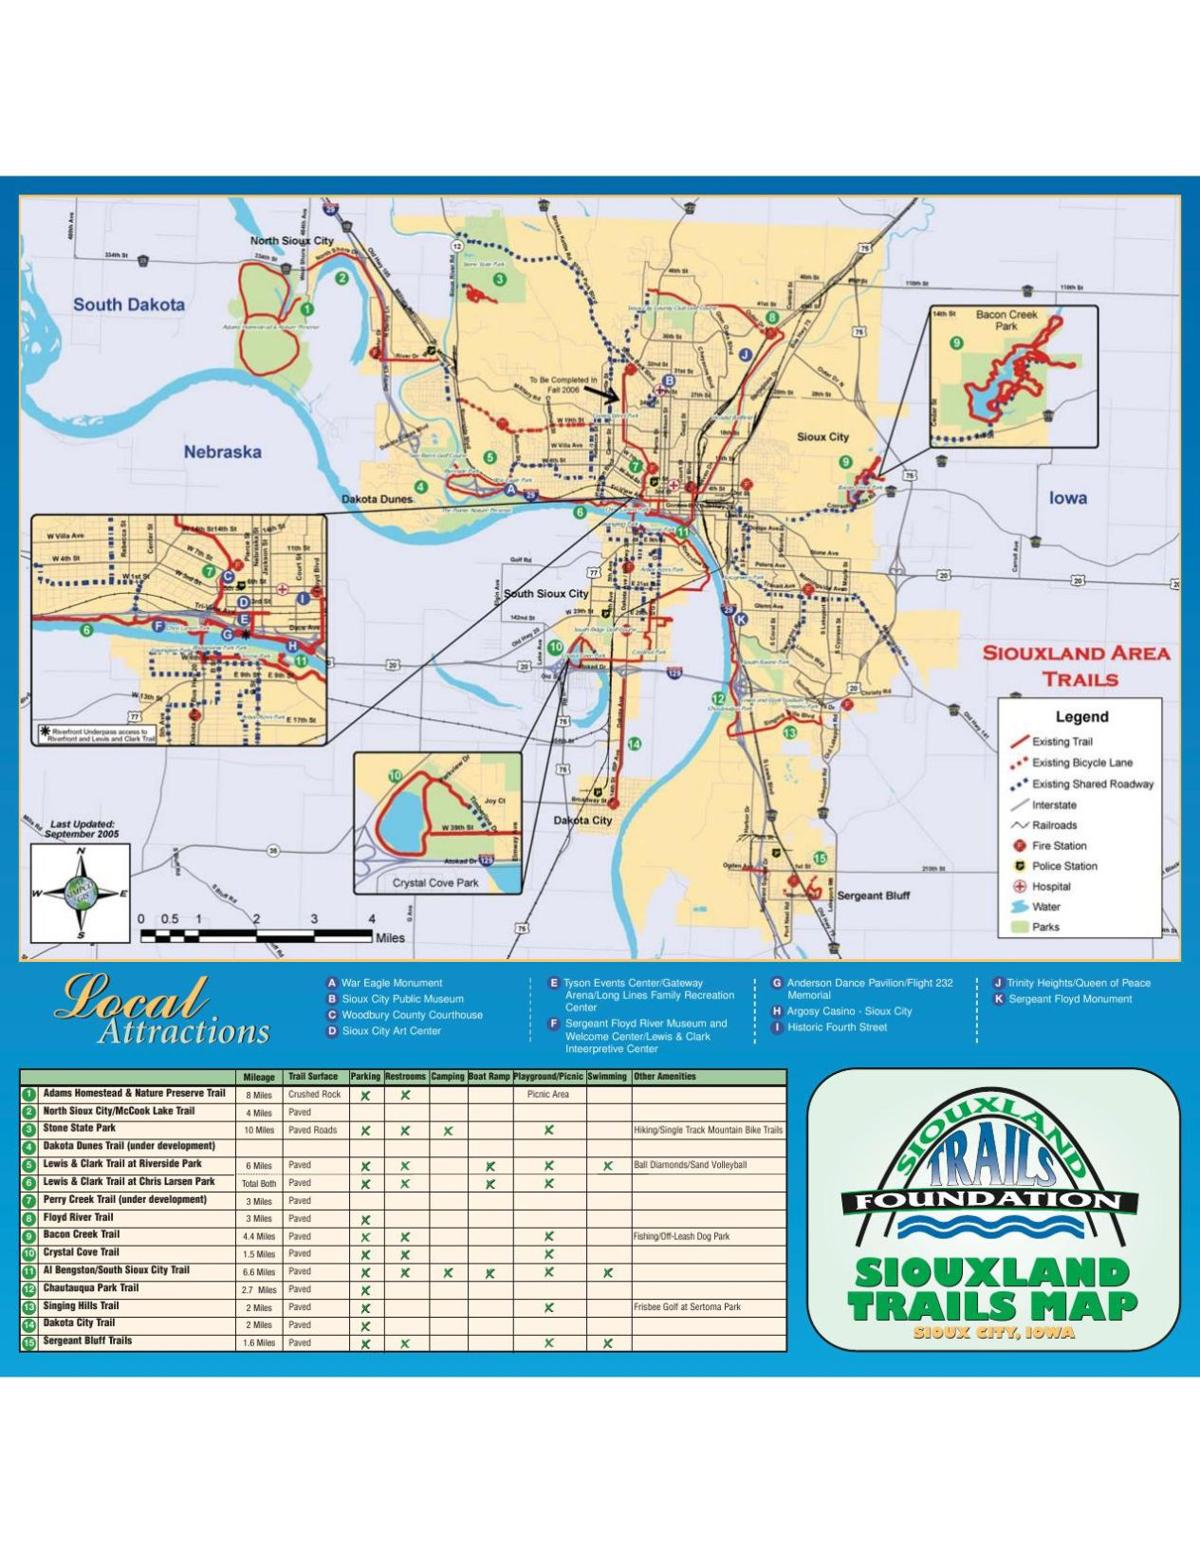 Click here for a map of Siouxland trails